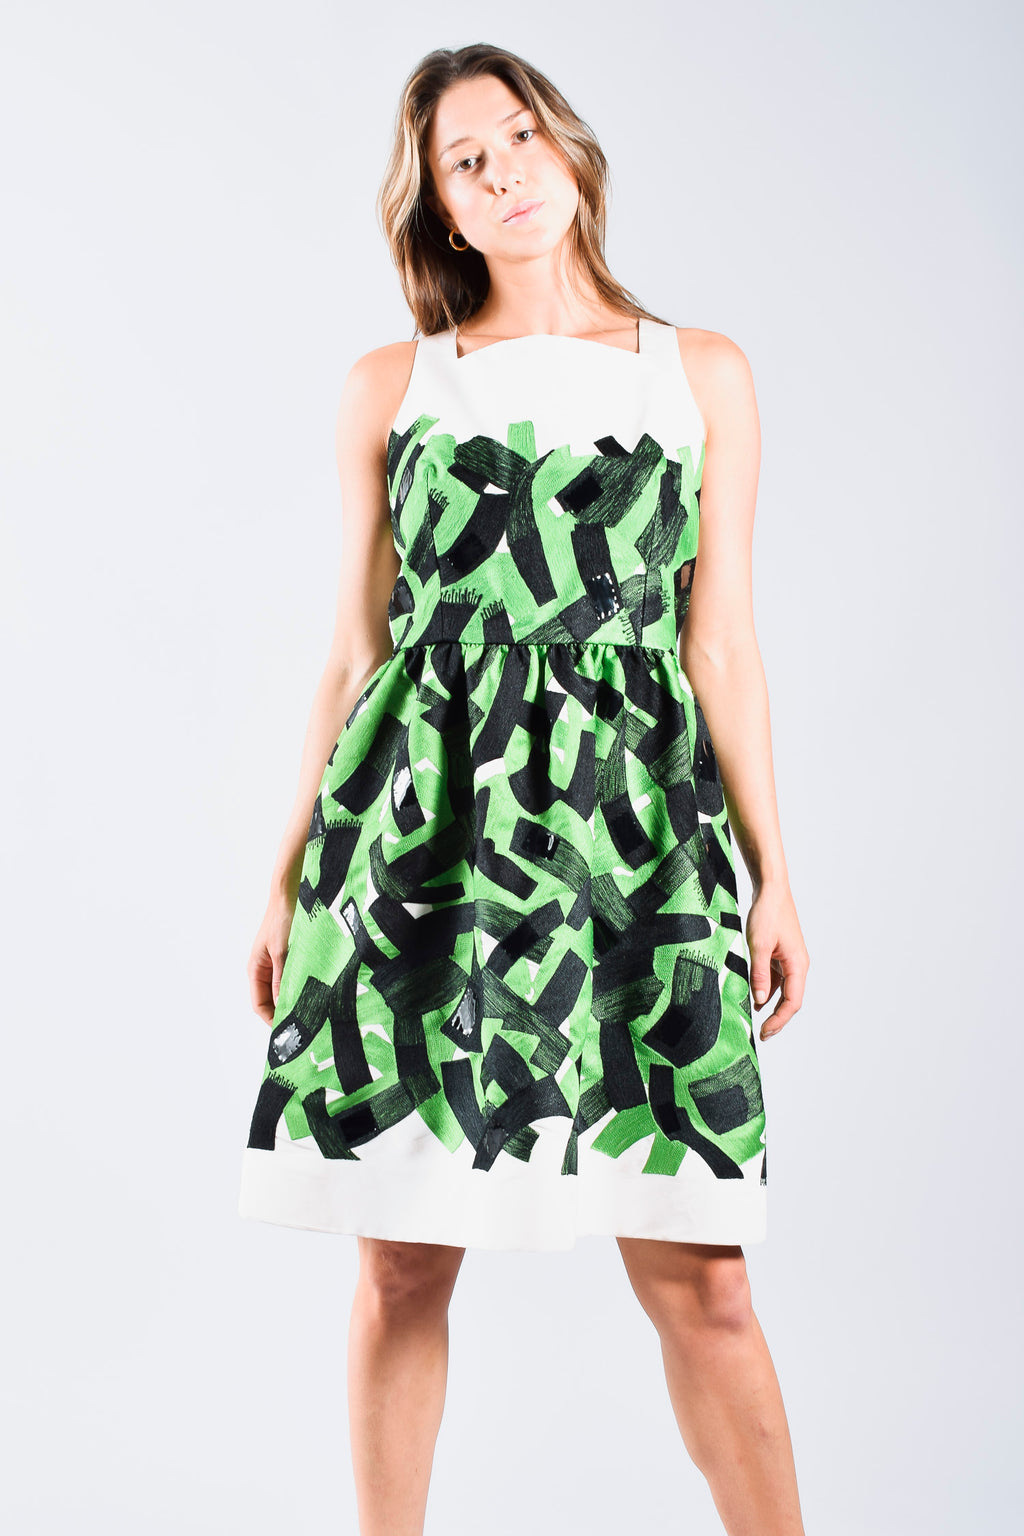 Oscar De La Renta Green & Black Sleeveless Dress Size 10